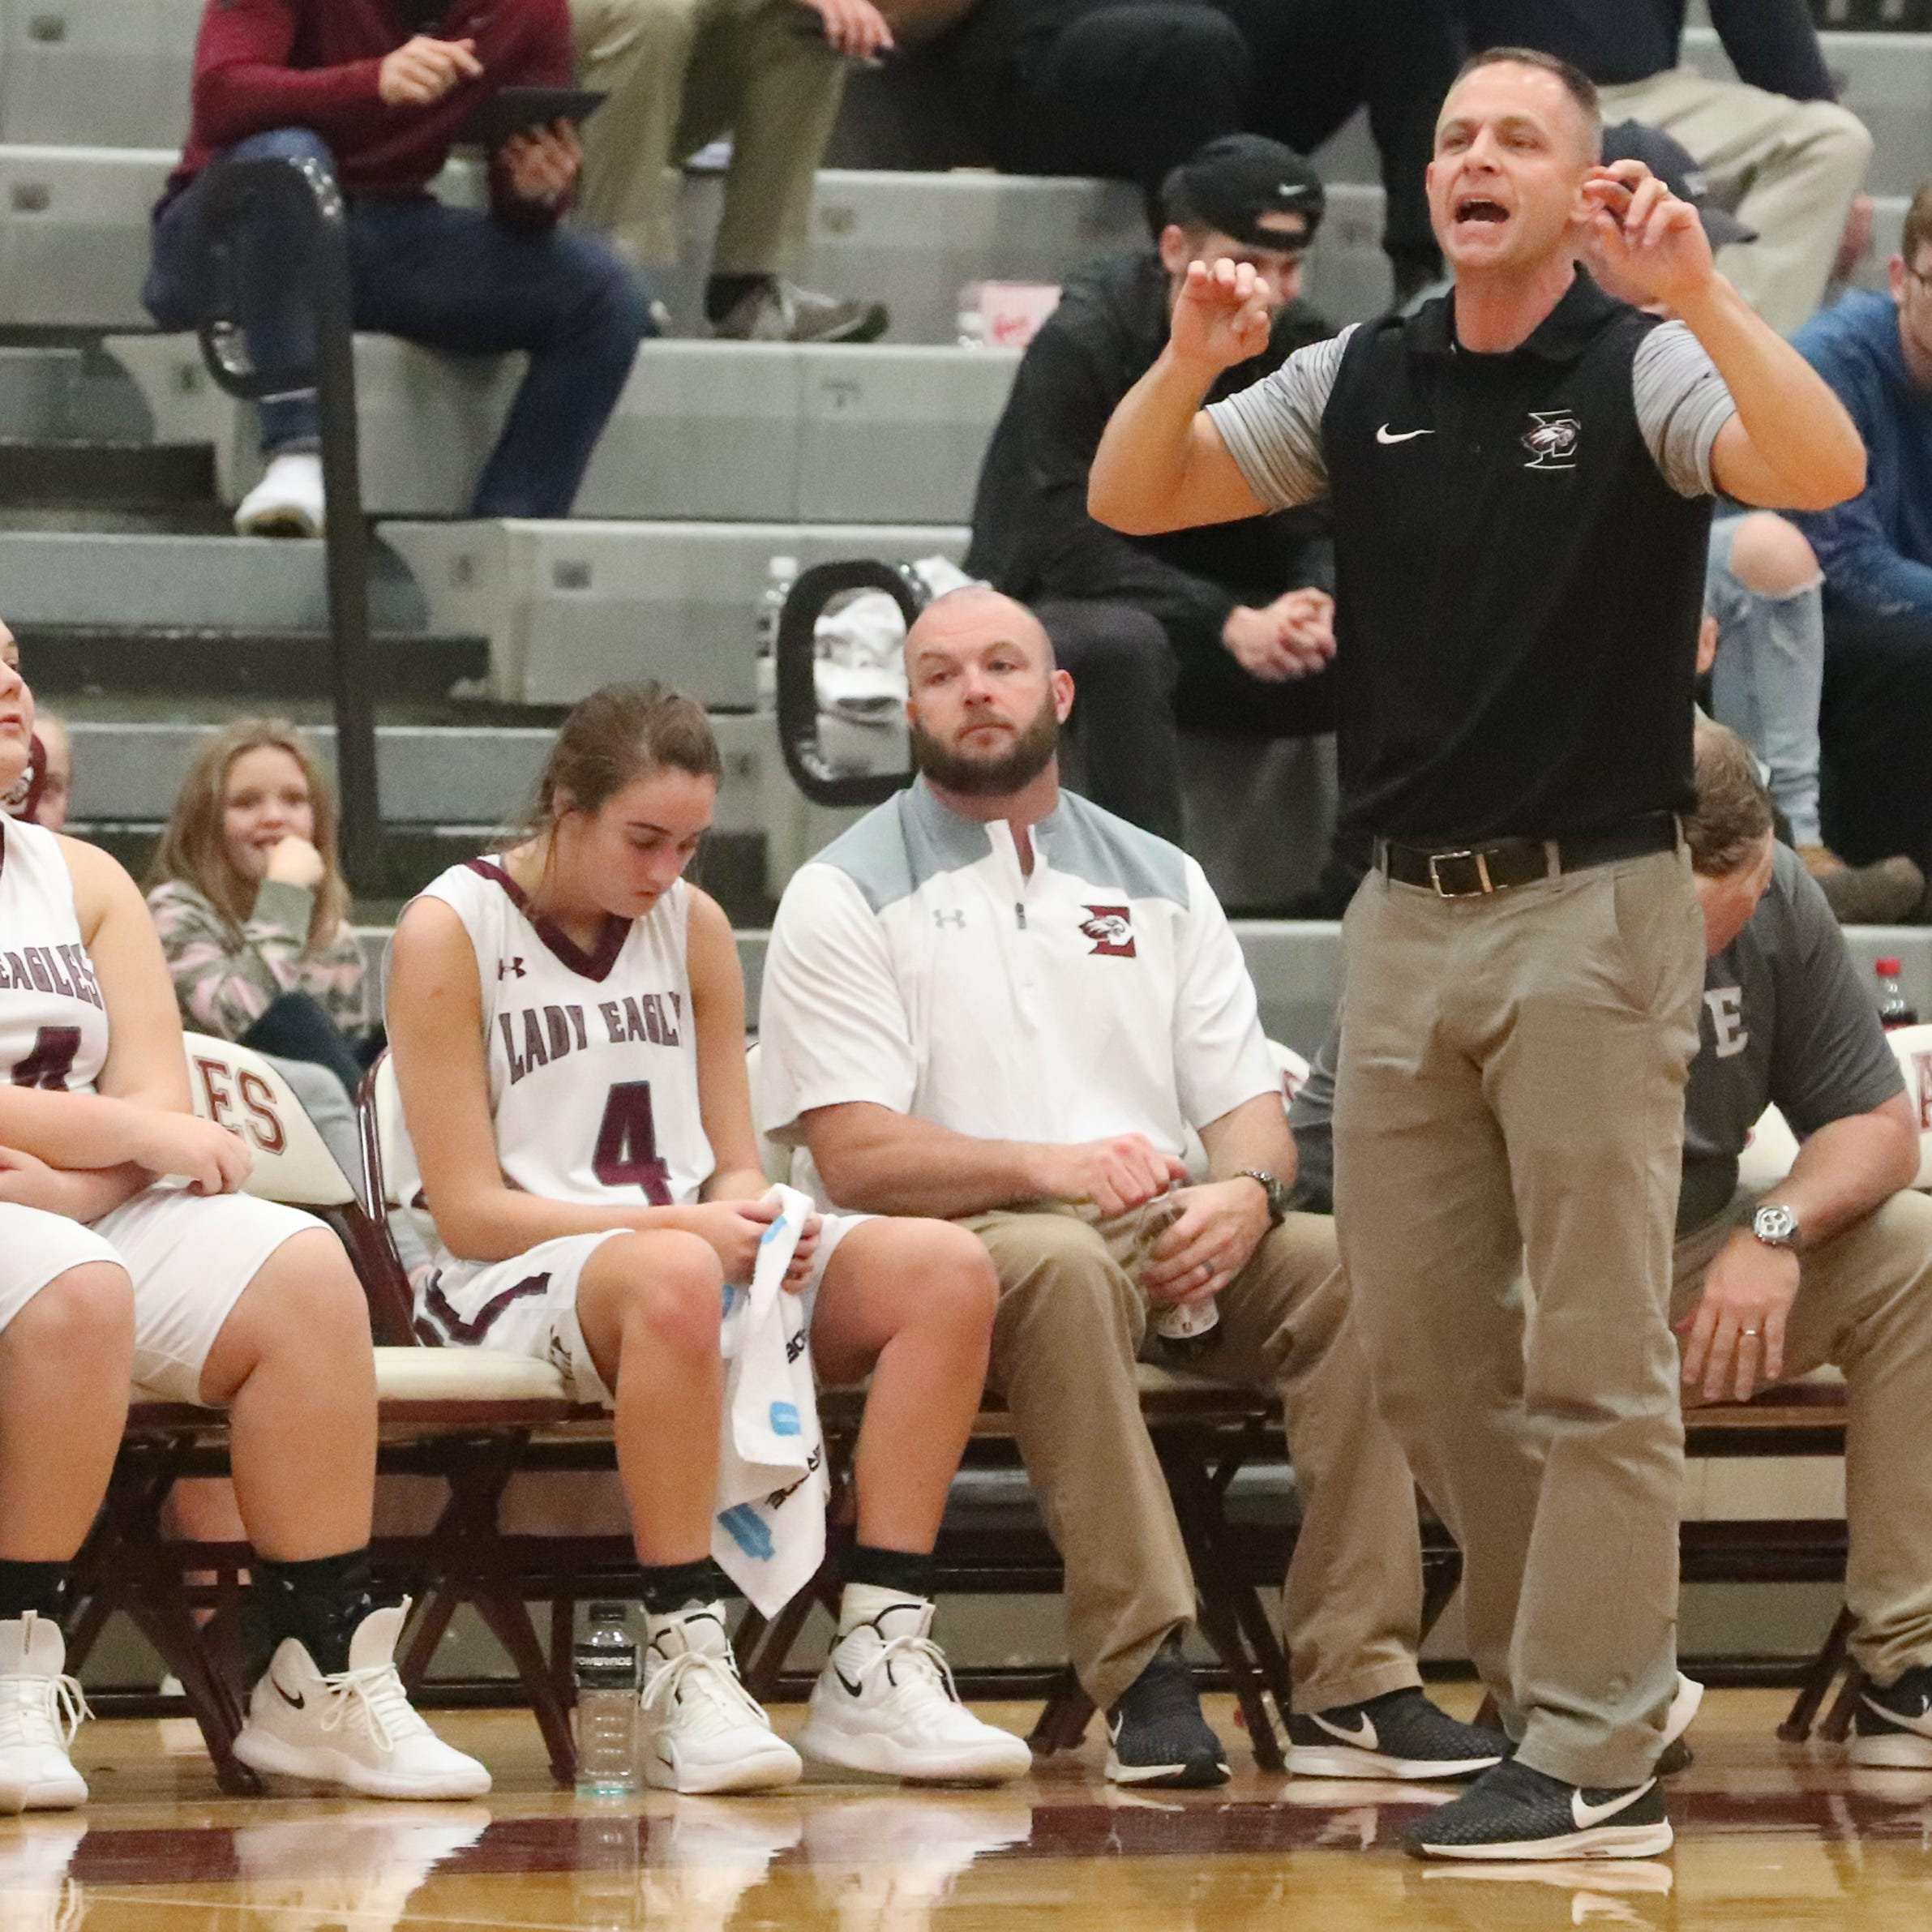 Eagleville's head coach Chris Lynch on the sidelines during the game against Community at Eagleville on Tuesday, Dec. 11, 2018.